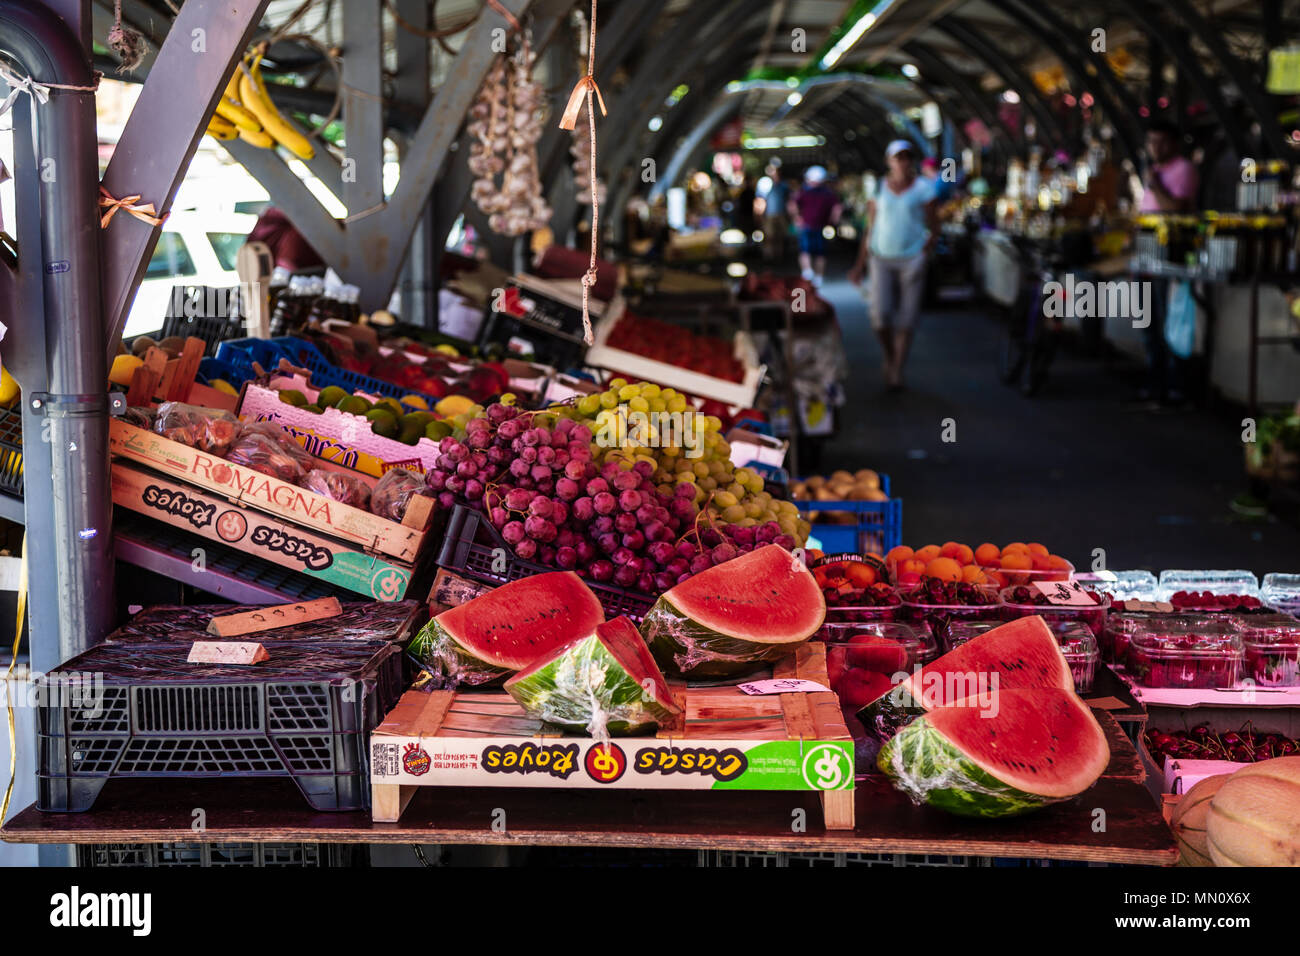 PULA, CROATIA - JUNE 26, 2017. People shopping fruits and vegetables at local marketplace - Stock Image